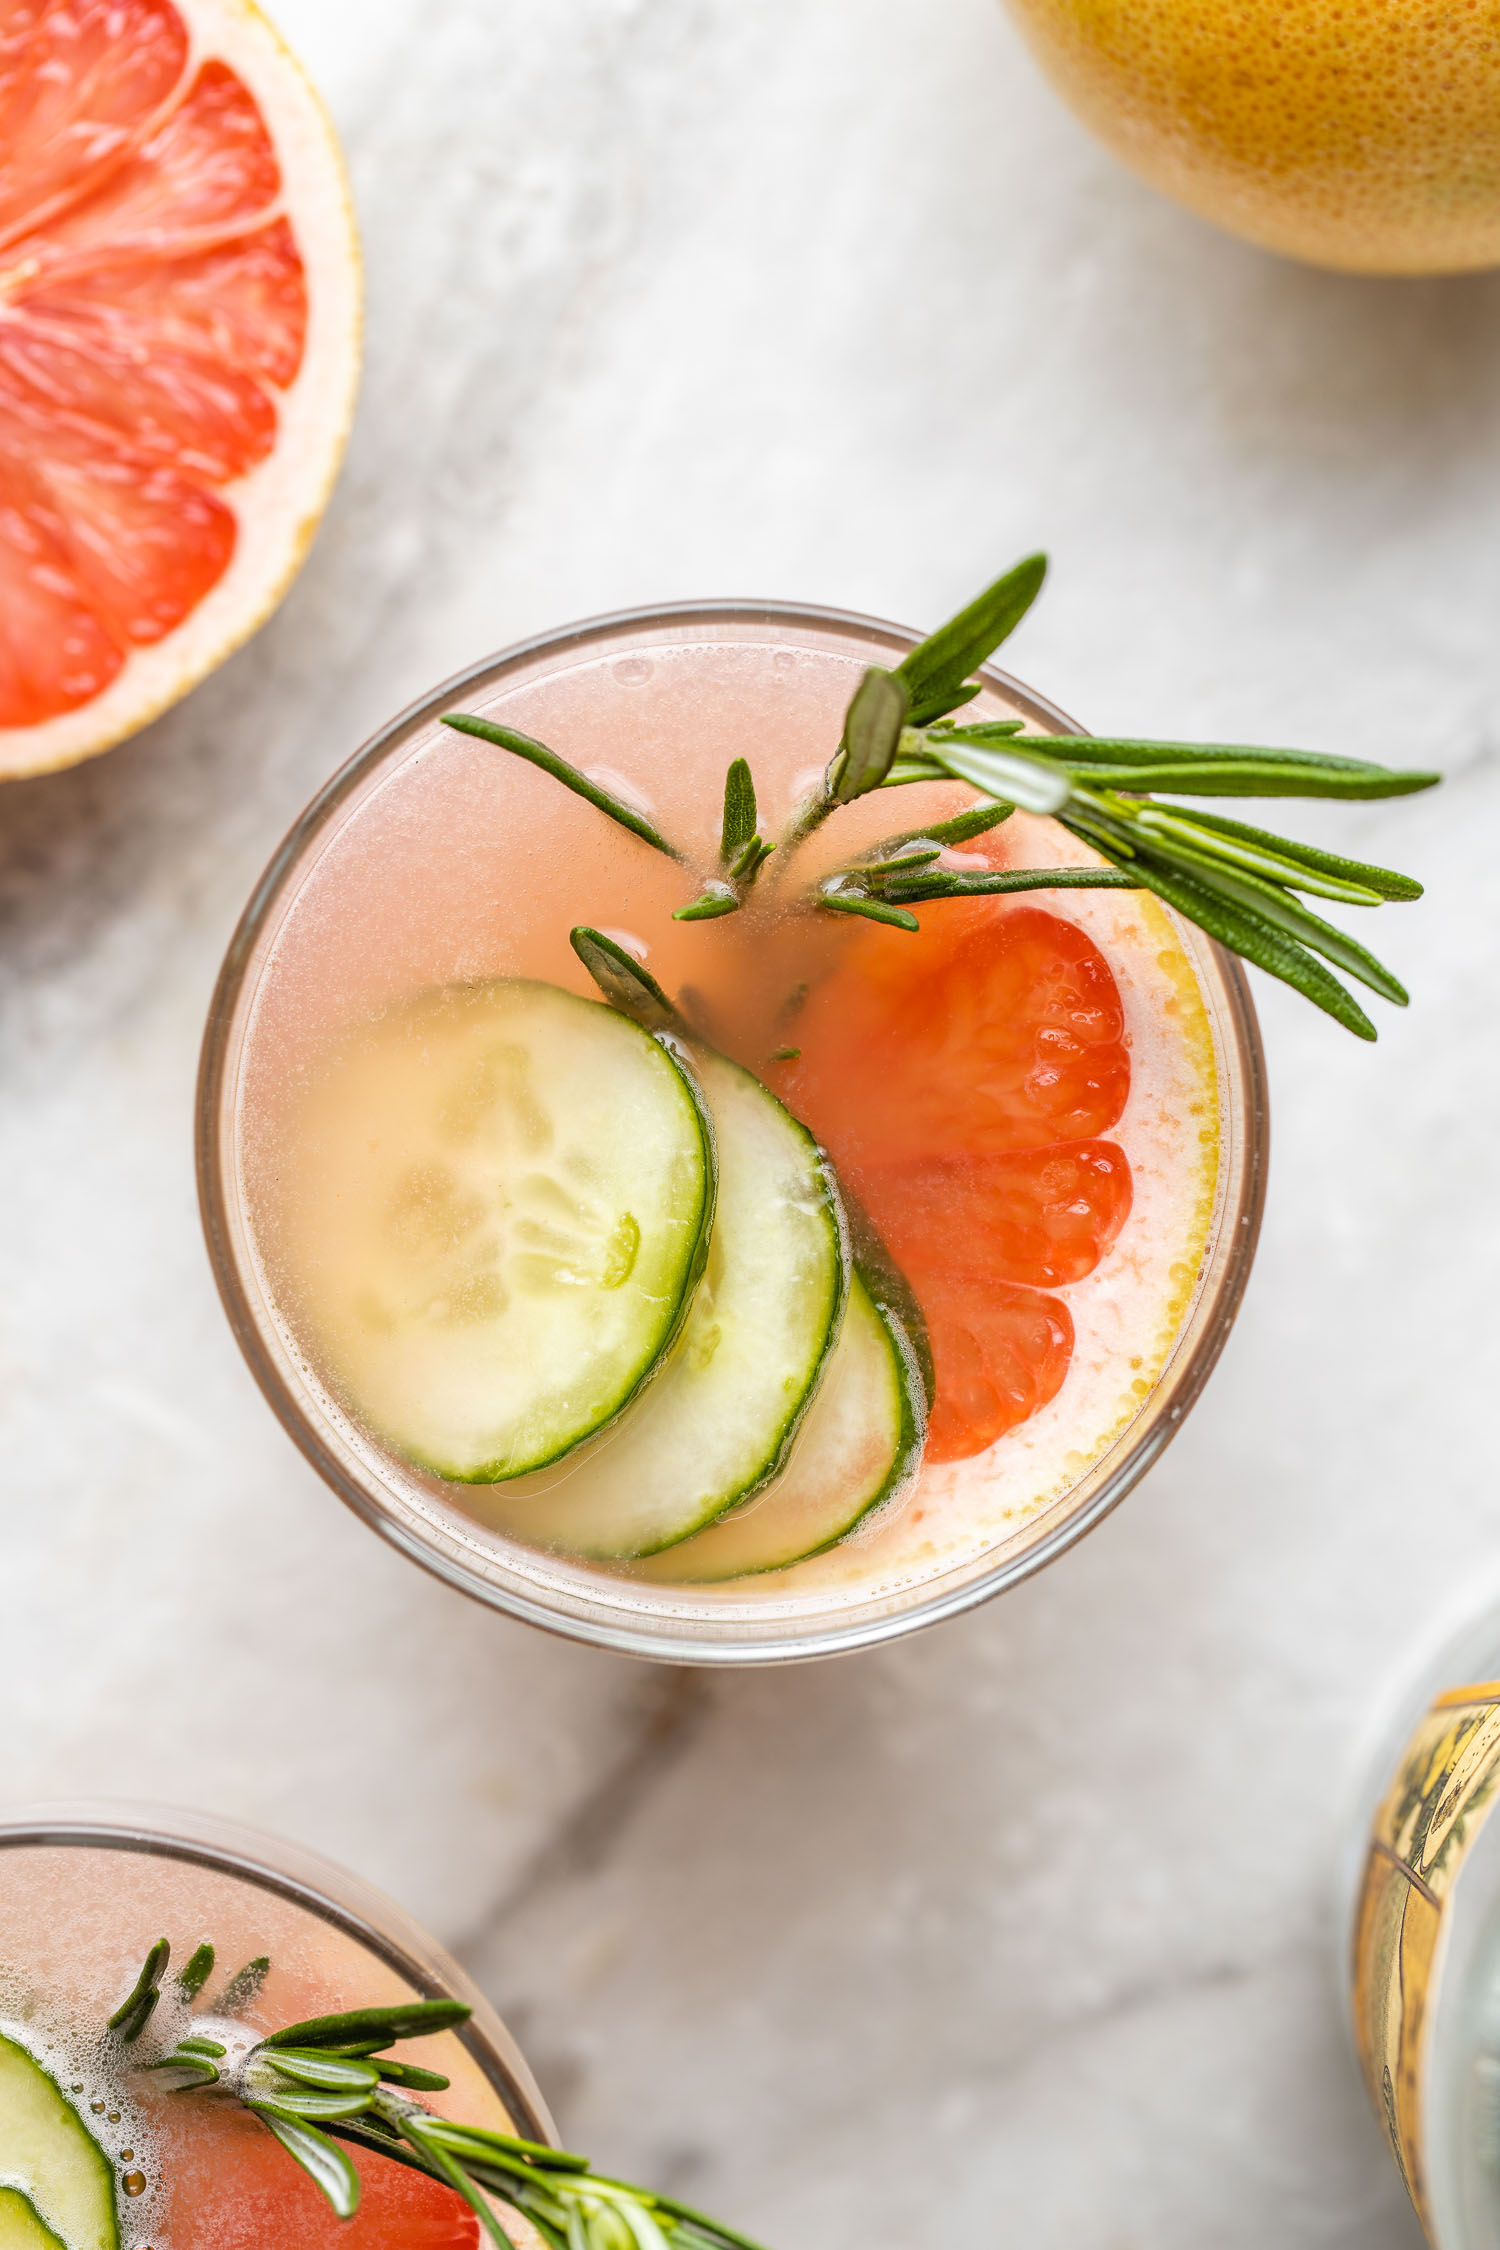 pink low carb gin and juice cocktail with cucumber slices and rosemary sprig